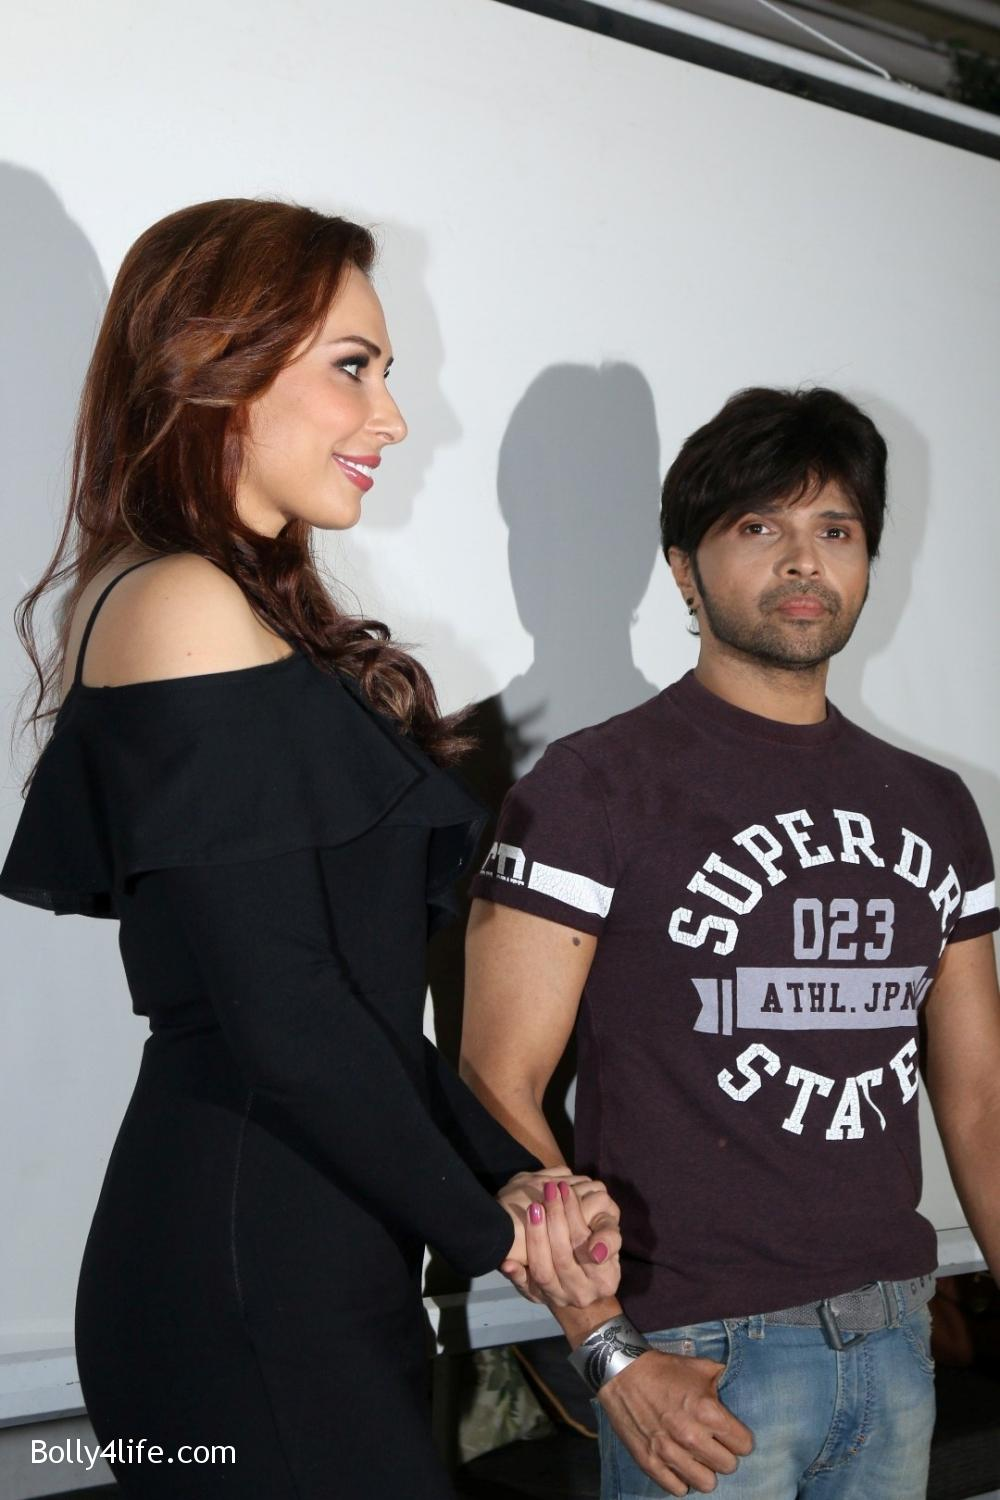 Salman-Khans-friend-Iulia-Vantur-during-teaser-launch-of-song-Every-Night-and-Day-16.jpg